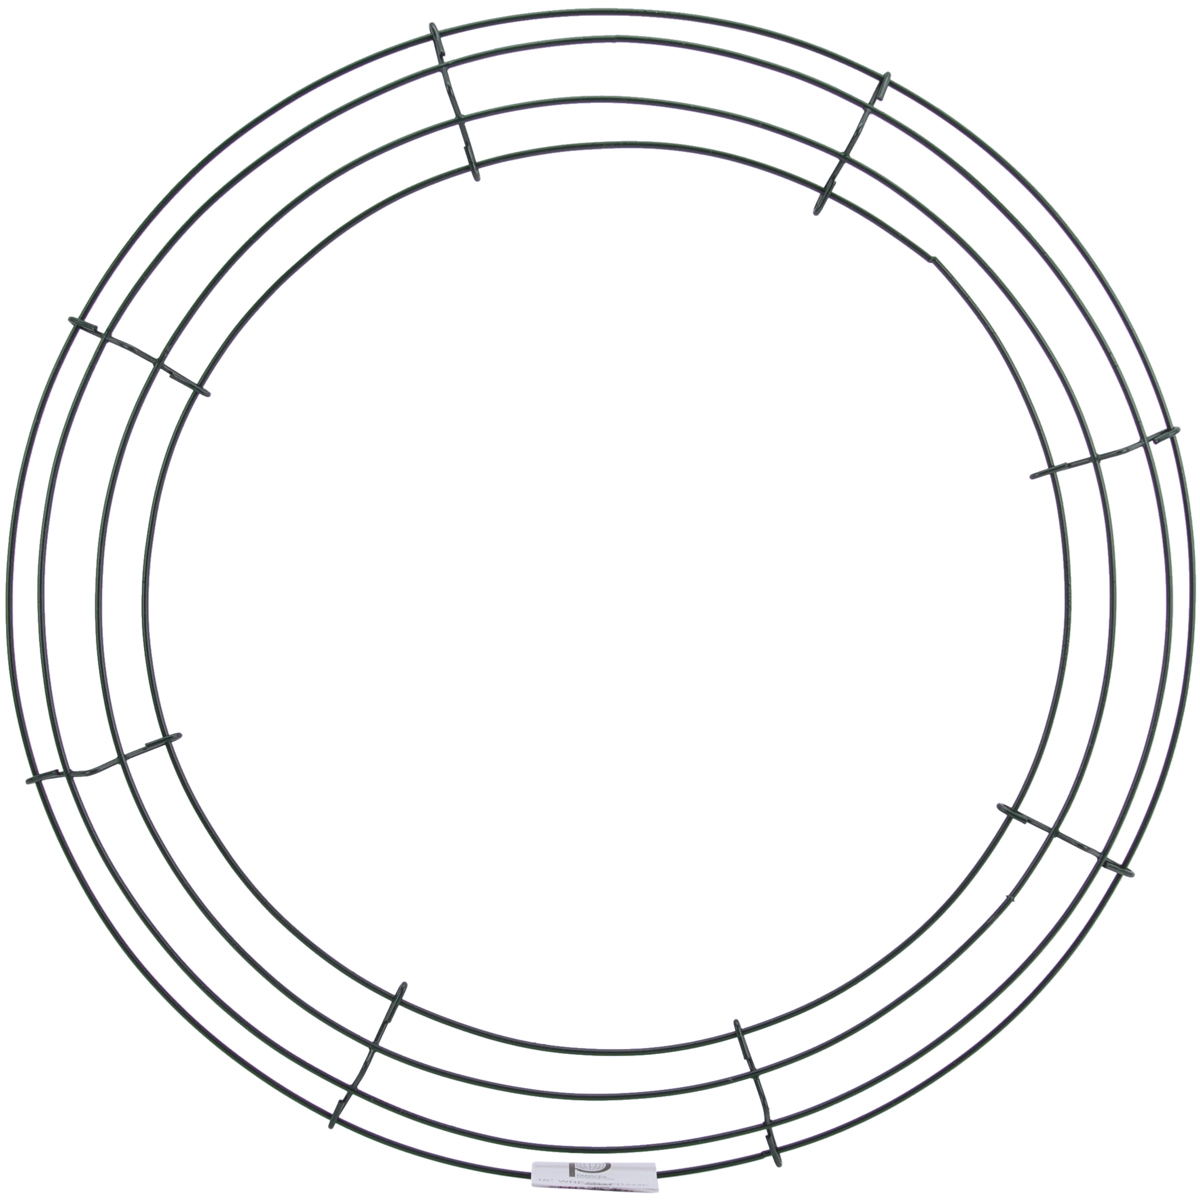 Wire wreath frame 16\ walmart wire wreath rings with twist ties wire wreath forms wholesale advent wreath ring on wire wreath ring for 16